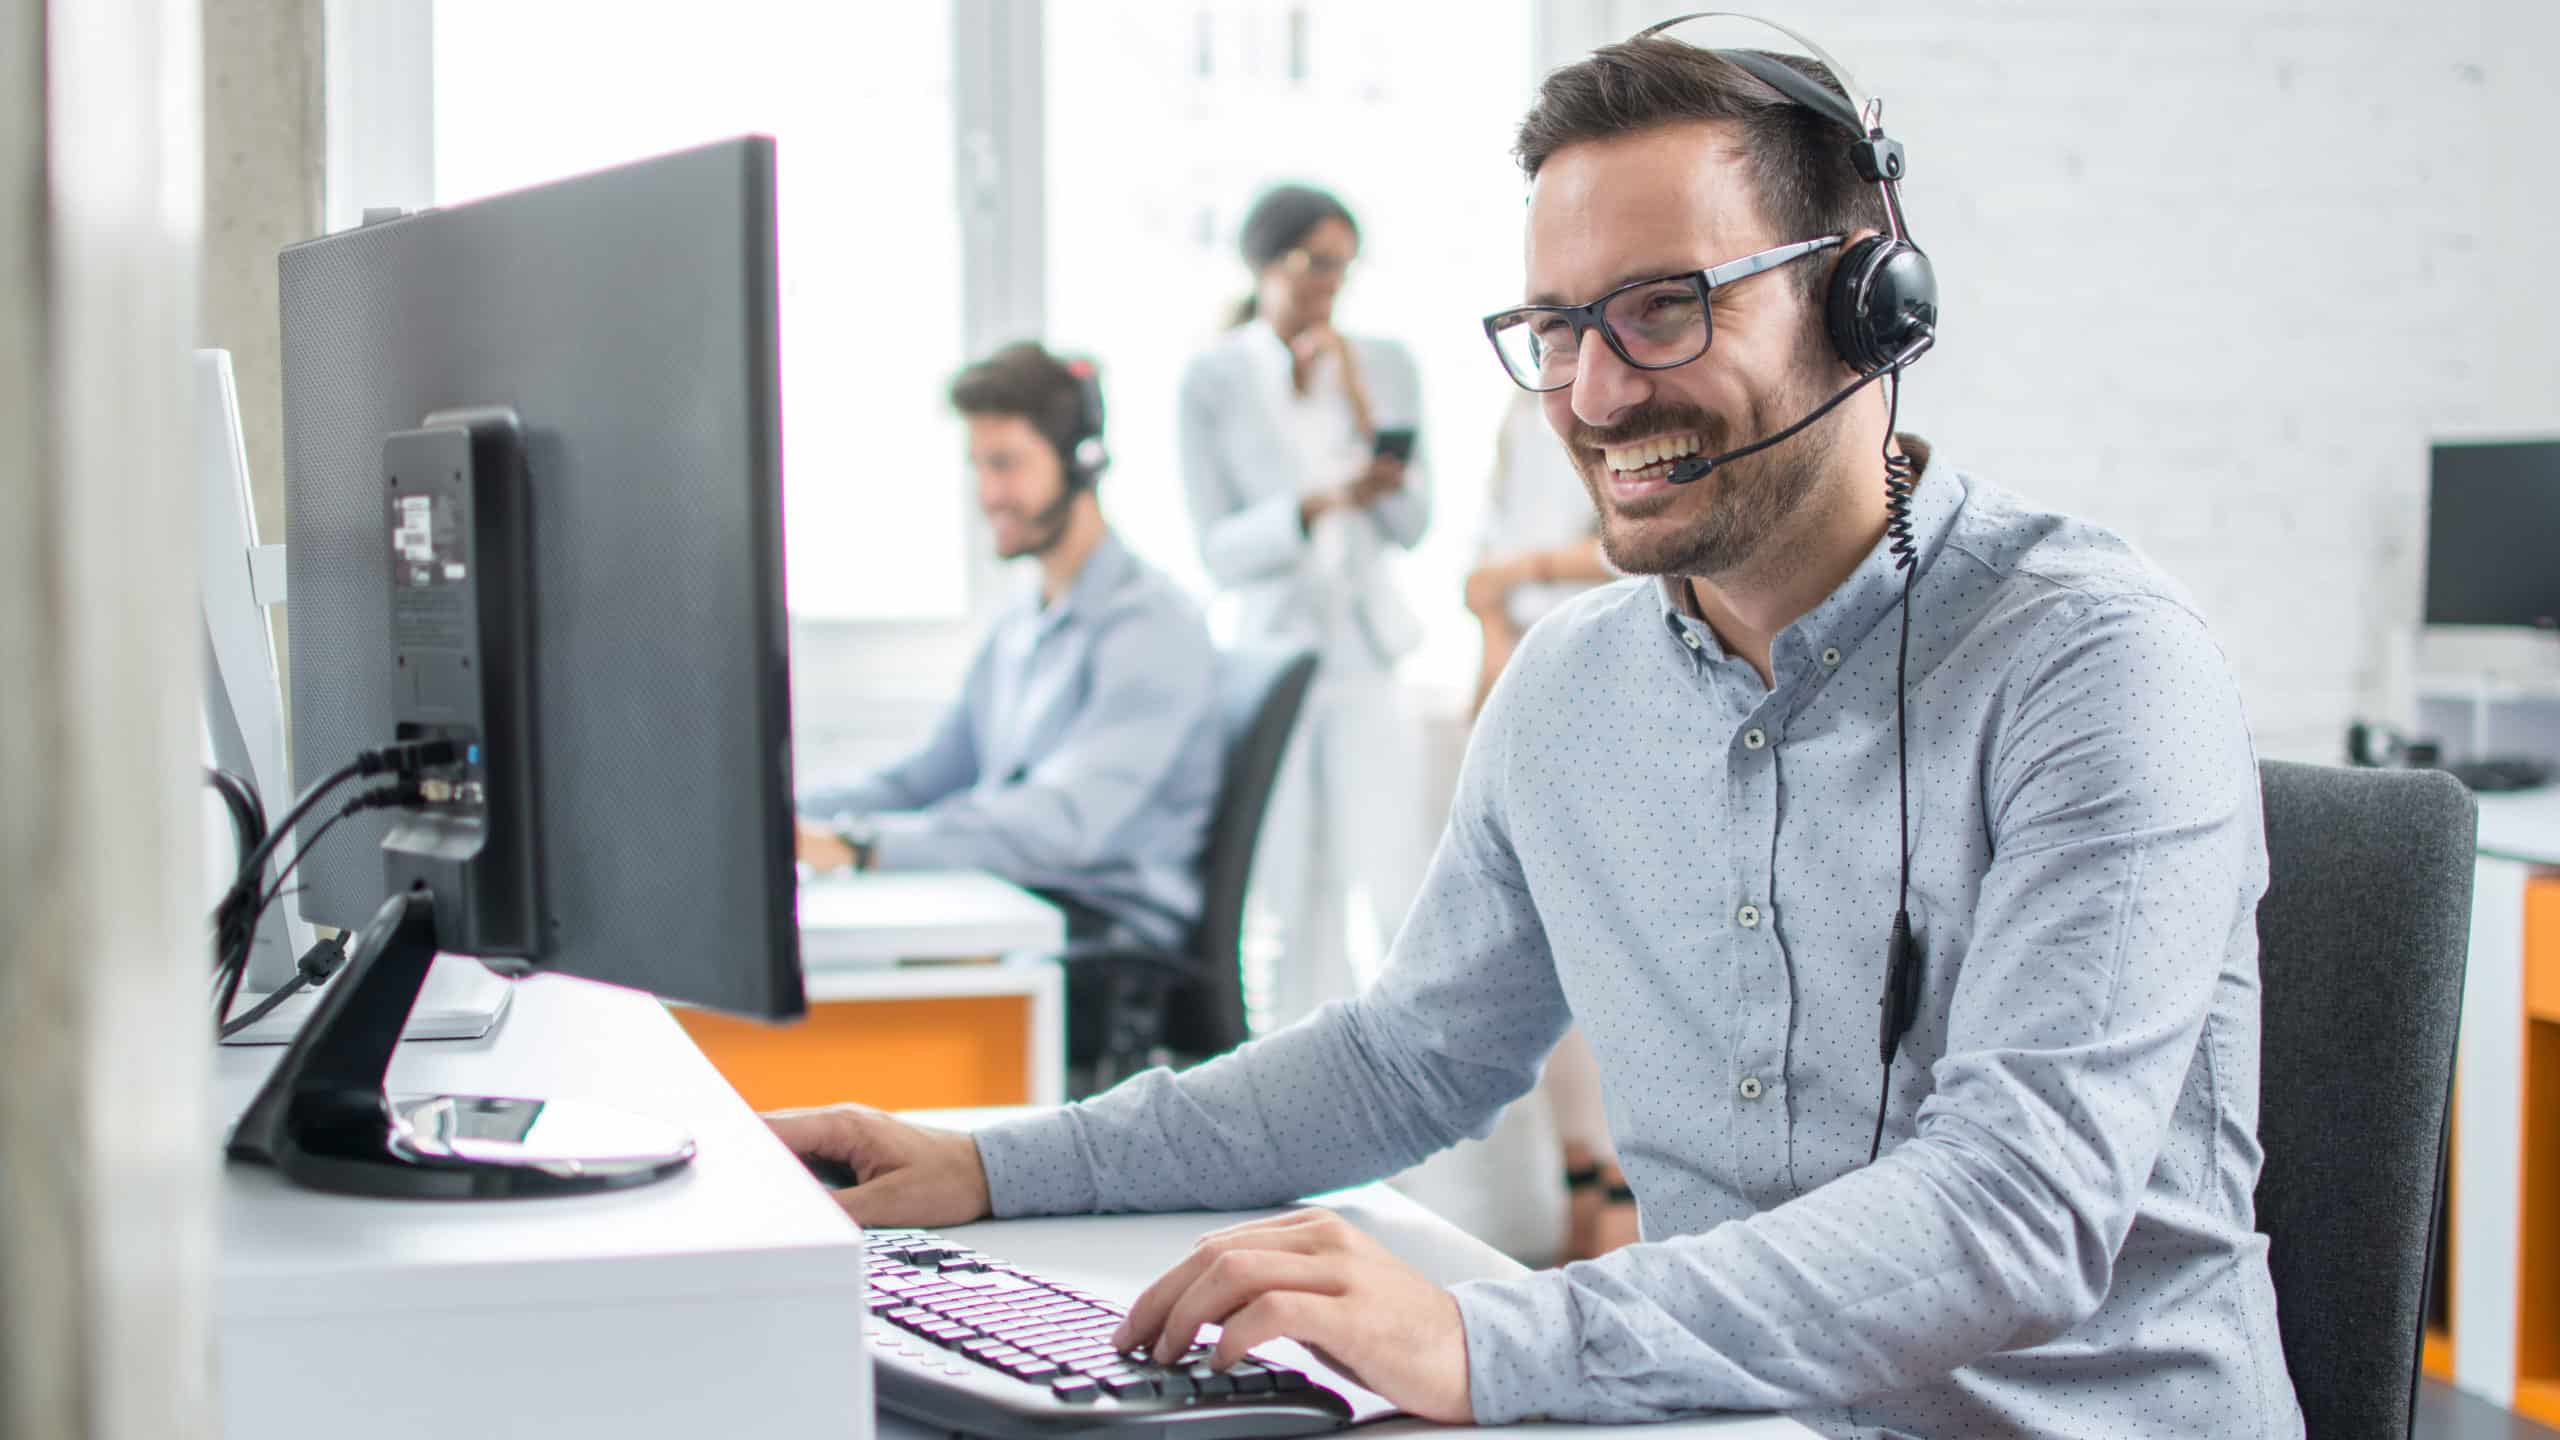 Smiling customer service representative on the phone with a customer; Start your career in trucking and logistics to not only learn more about the industry, but to also become a better employee by gaining new skills, learning to deal with new tasks daily, and to open new opportunities for yourself.